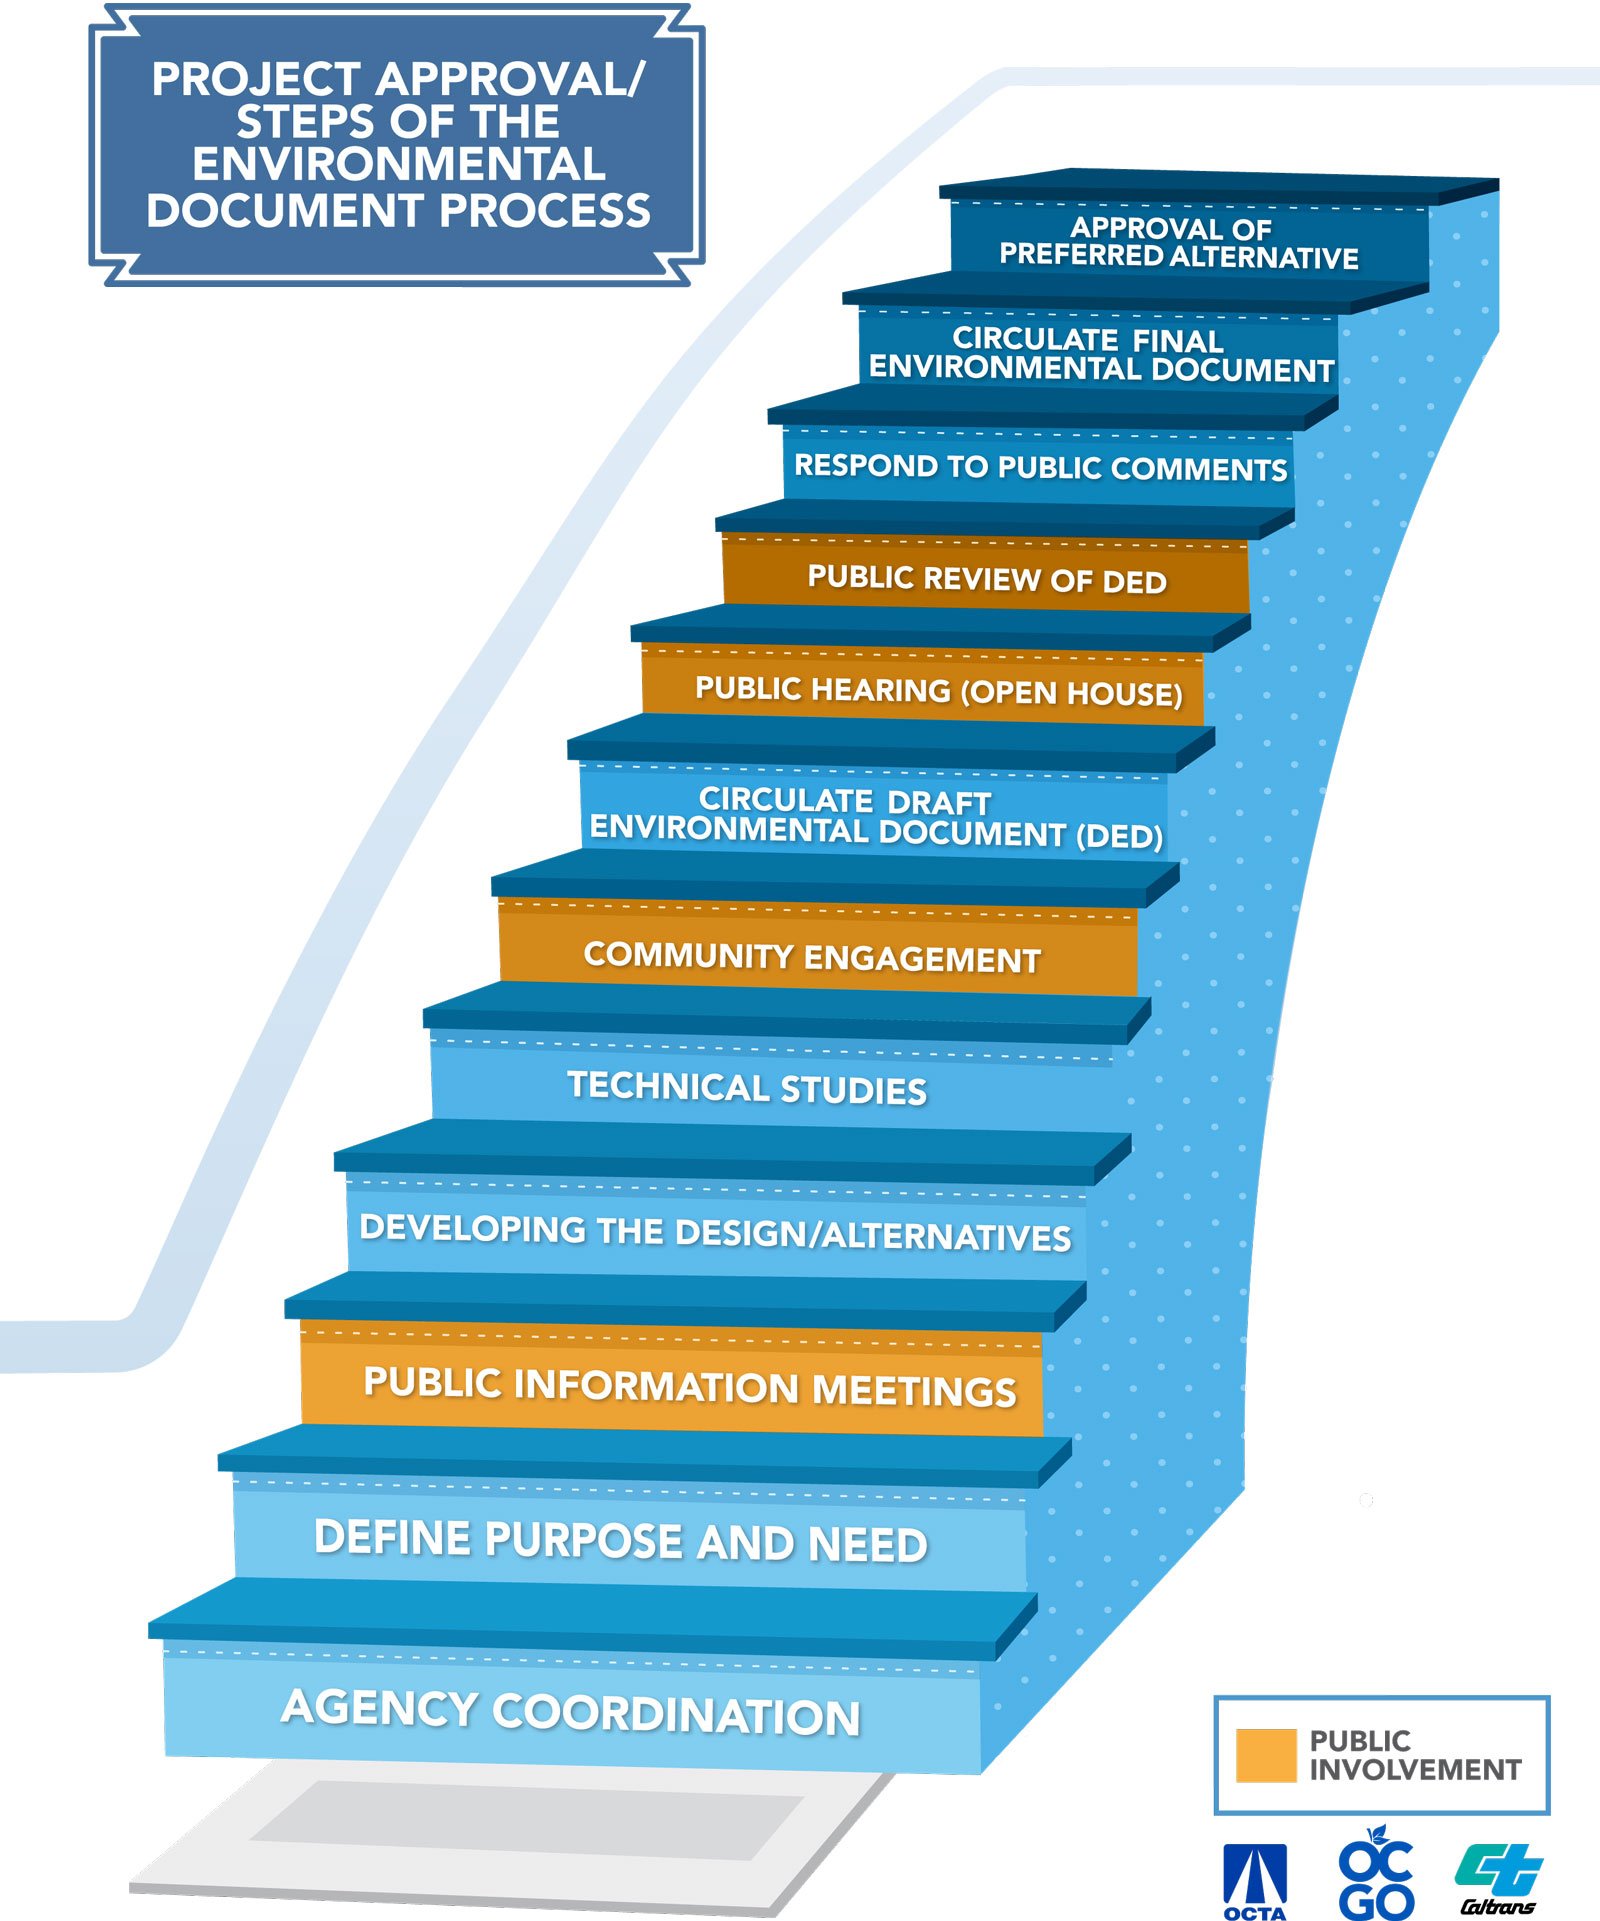 Environmental Review Process steps